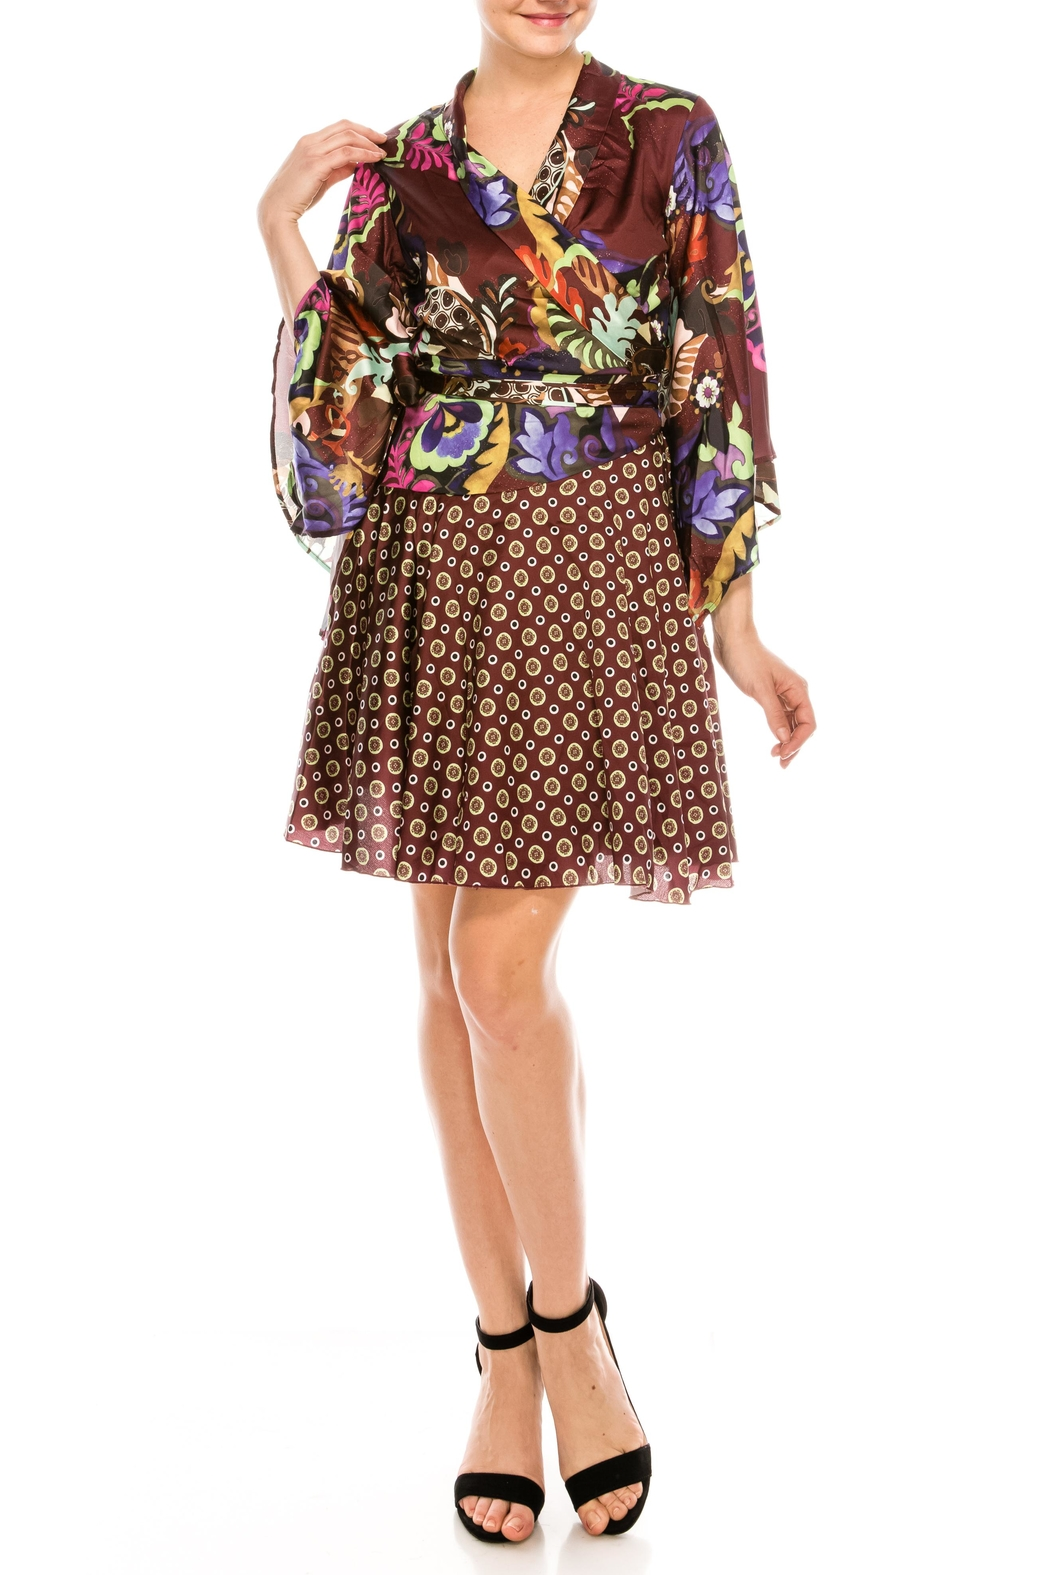 cq by cq Mixed Print Dress - Front Full Image